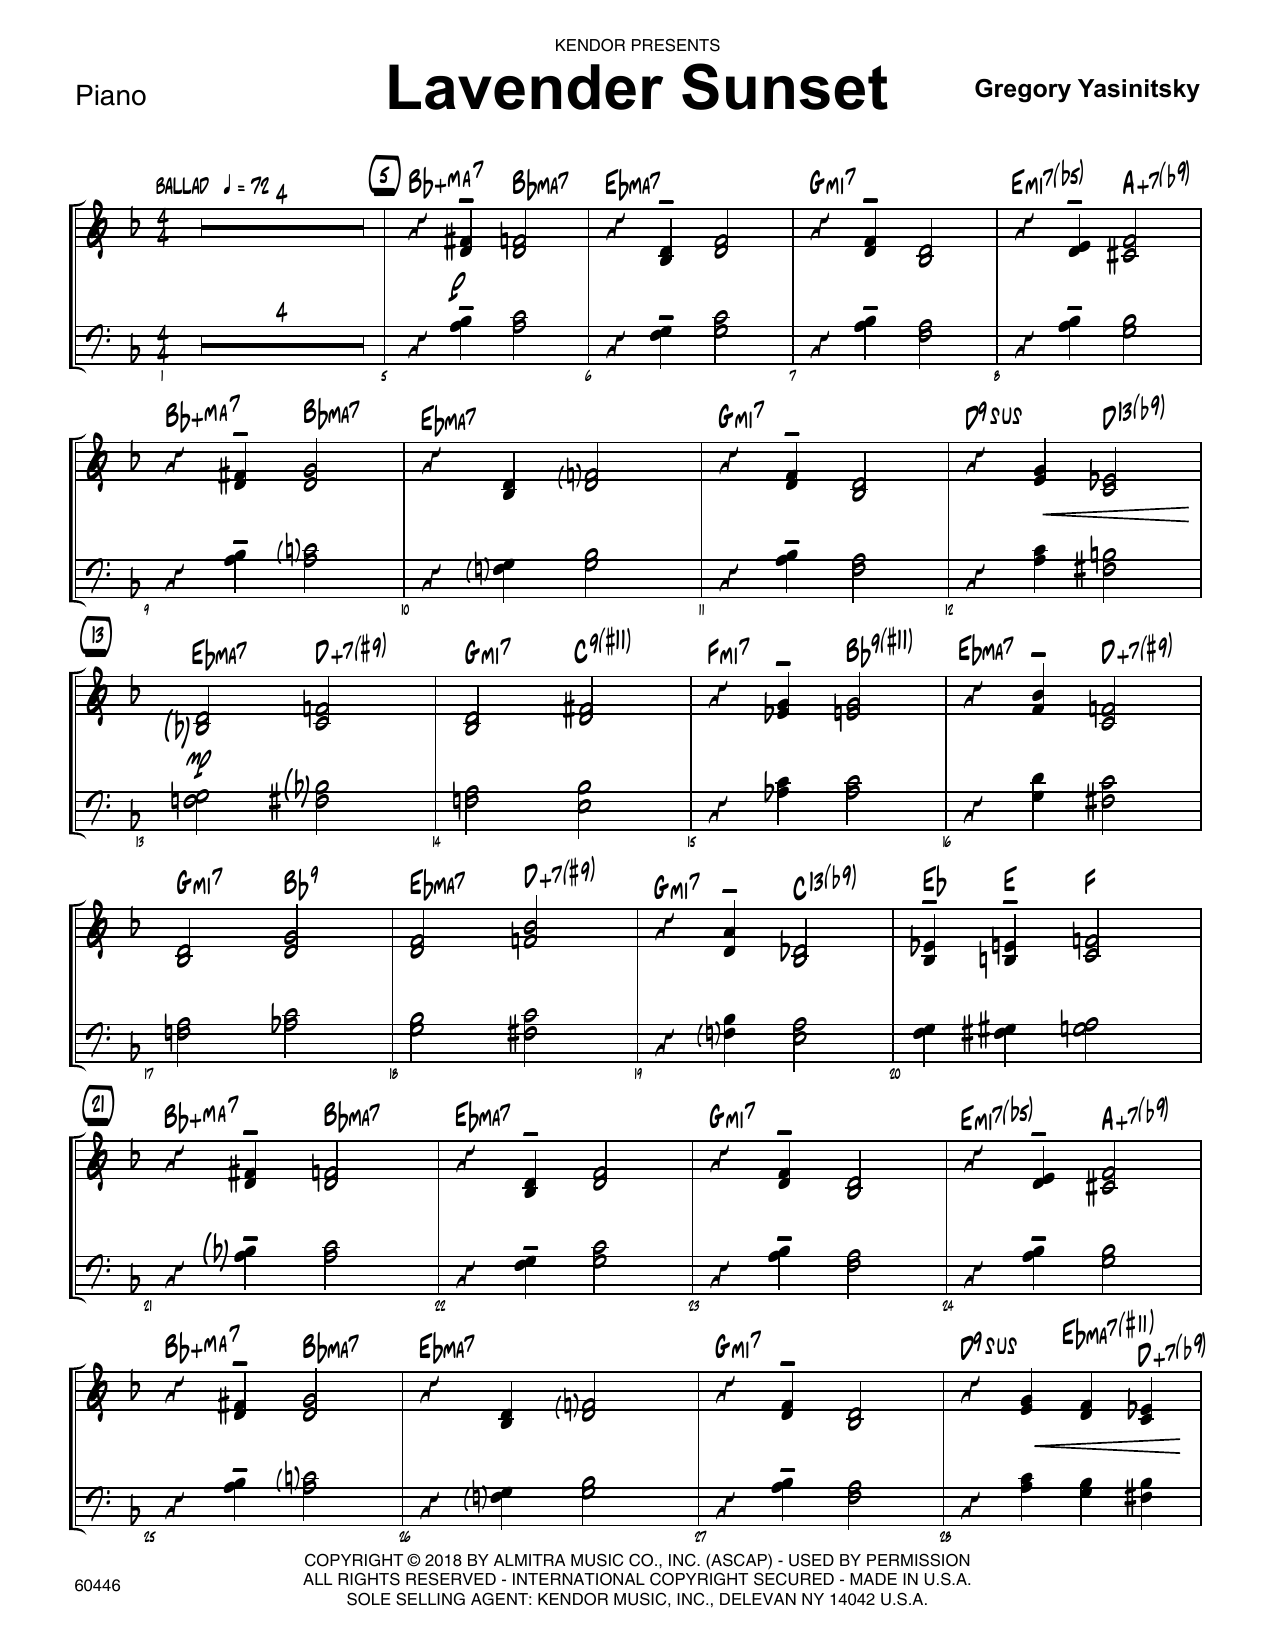 Gregory Yasinitsky Lavender Sunset - Piano sheet music preview music notes and score for Jazz Ensemble including 3 page(s)